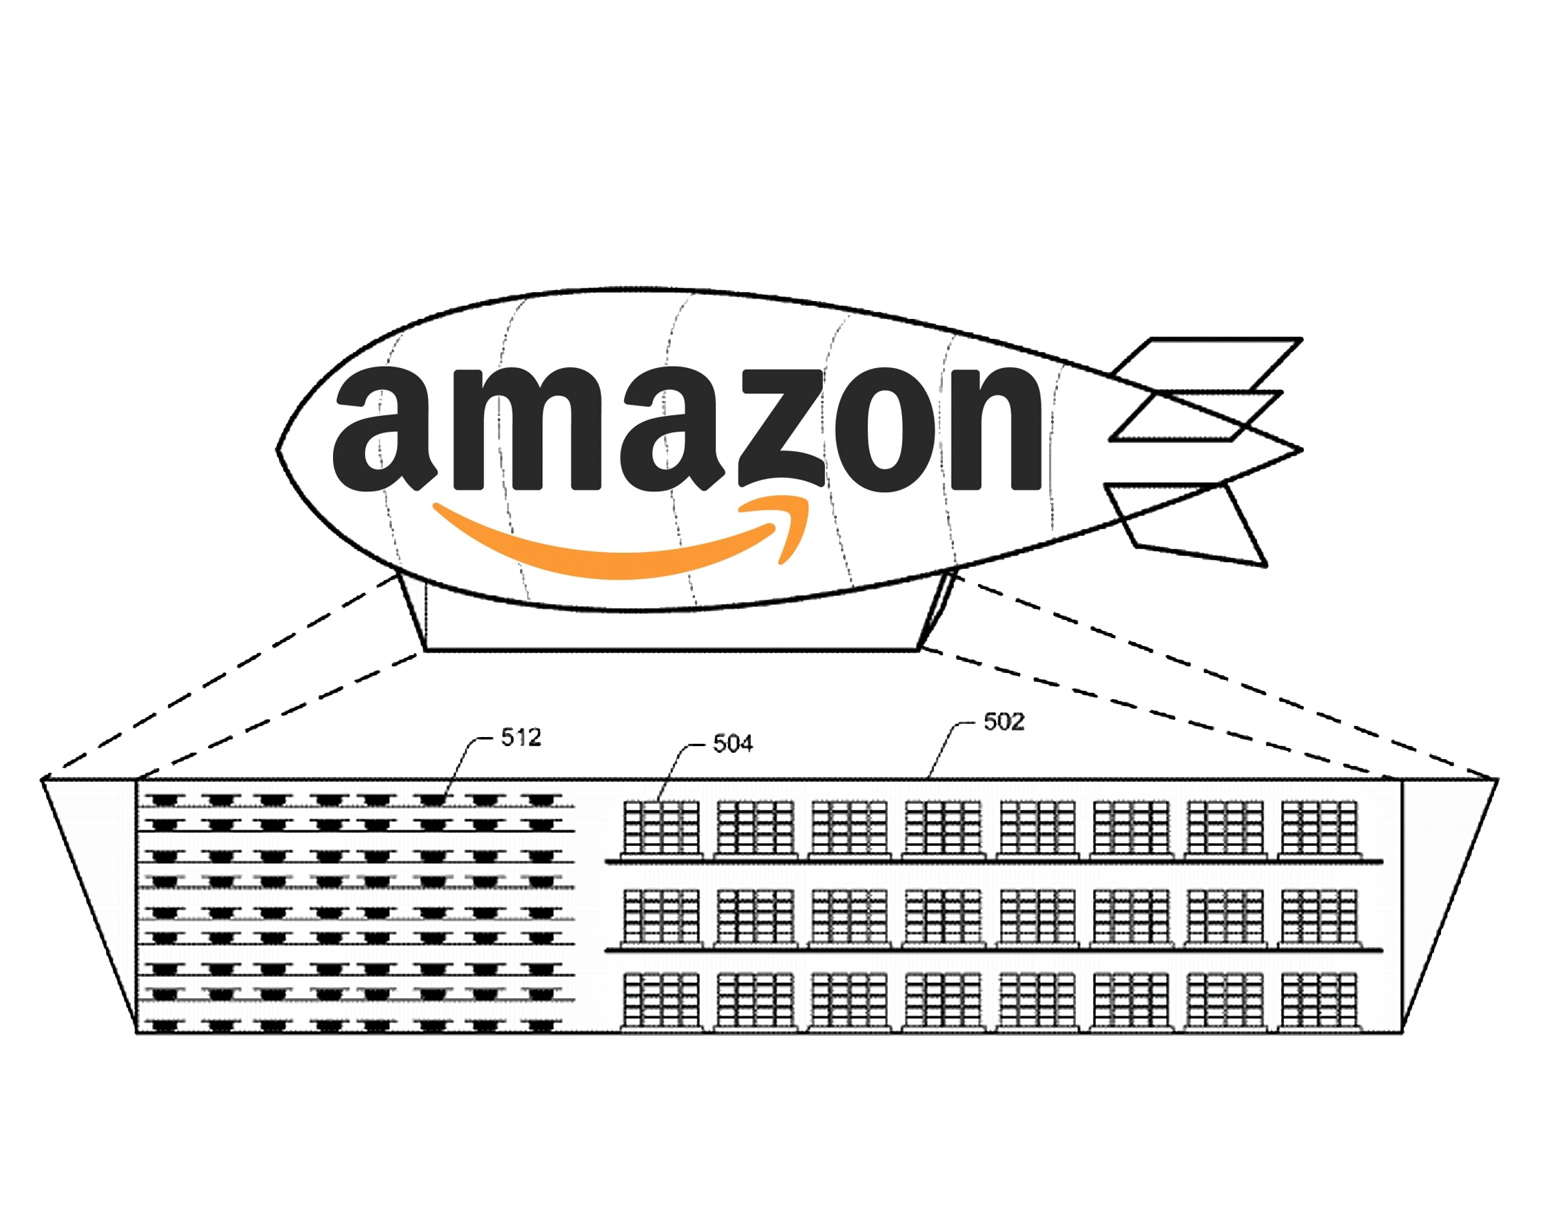 Amazon patented a hovering airship warehouse that shoots out delivery drones